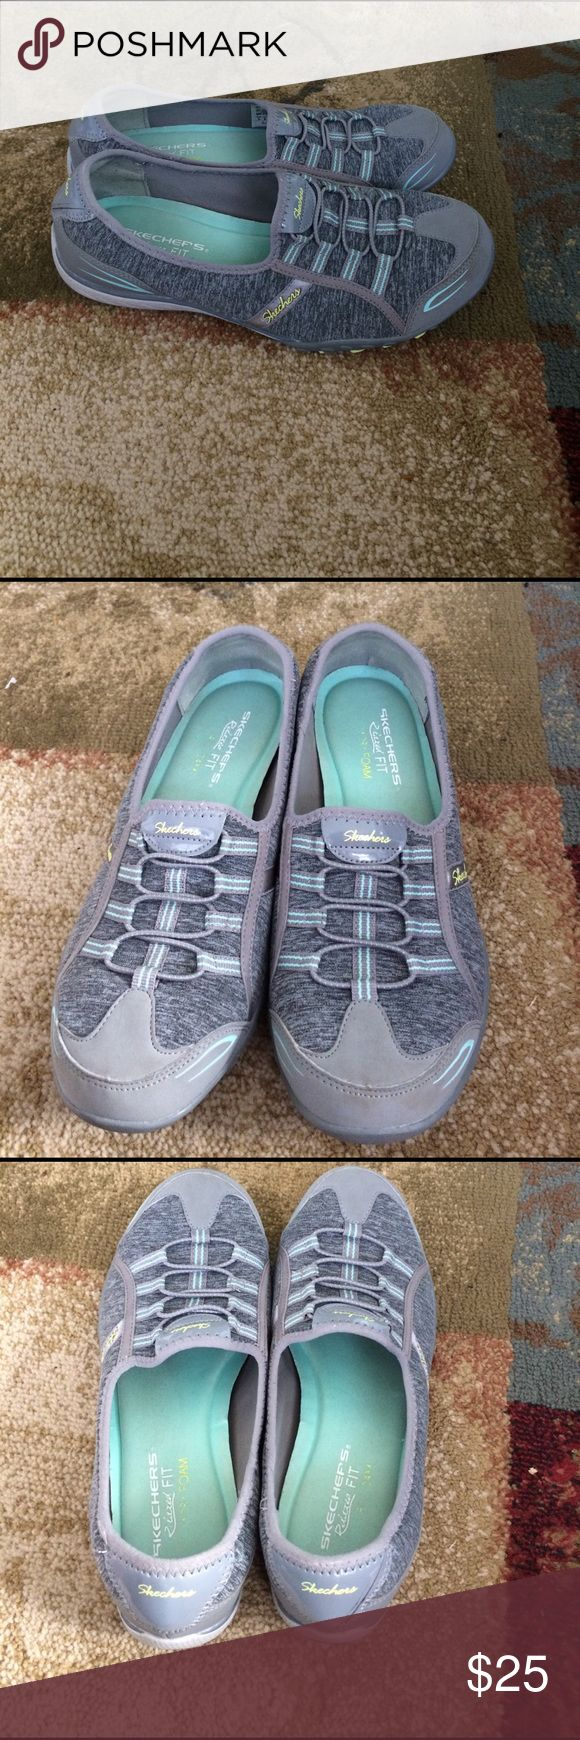 Skechers memory foam shoes size 9 Skechers memory foam shoes size 9. In good used condition. Has some wear because they are used. Gray in color. Comes from smoke free and pet free home. Skechers Shoes Flats & Loafers